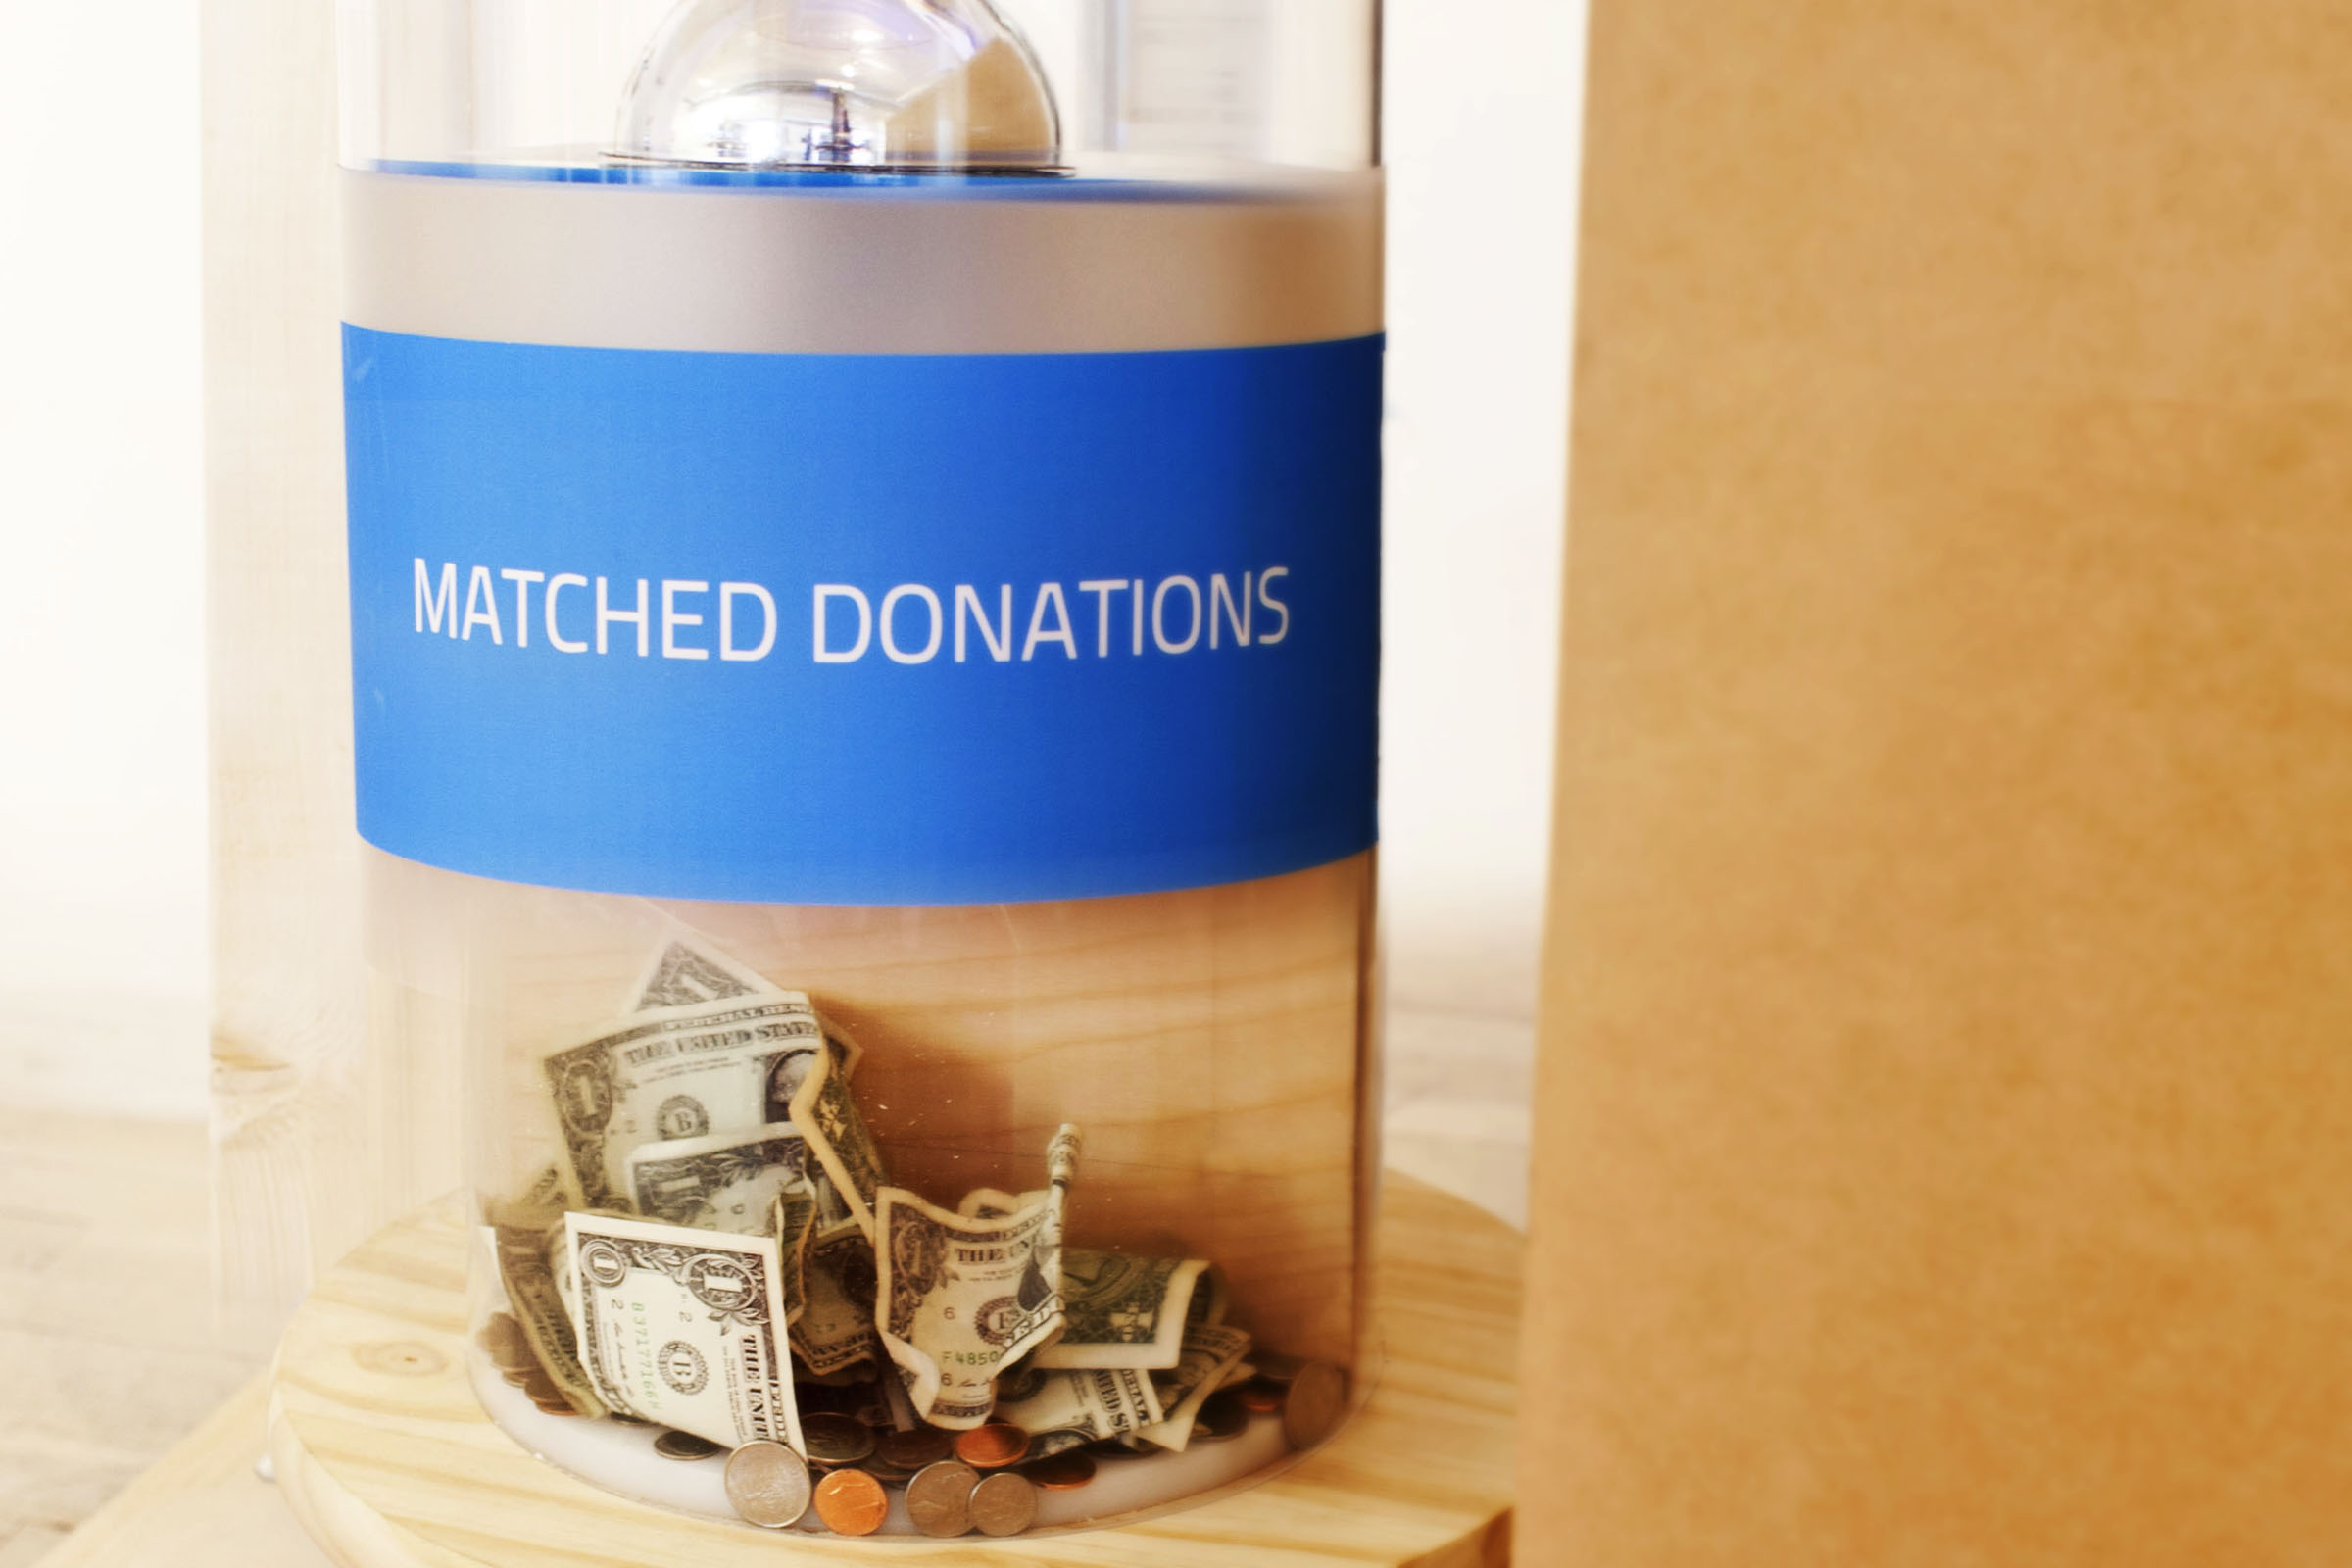 Donations are made in the name of the Wounded Warrior Project and matched by a third party...